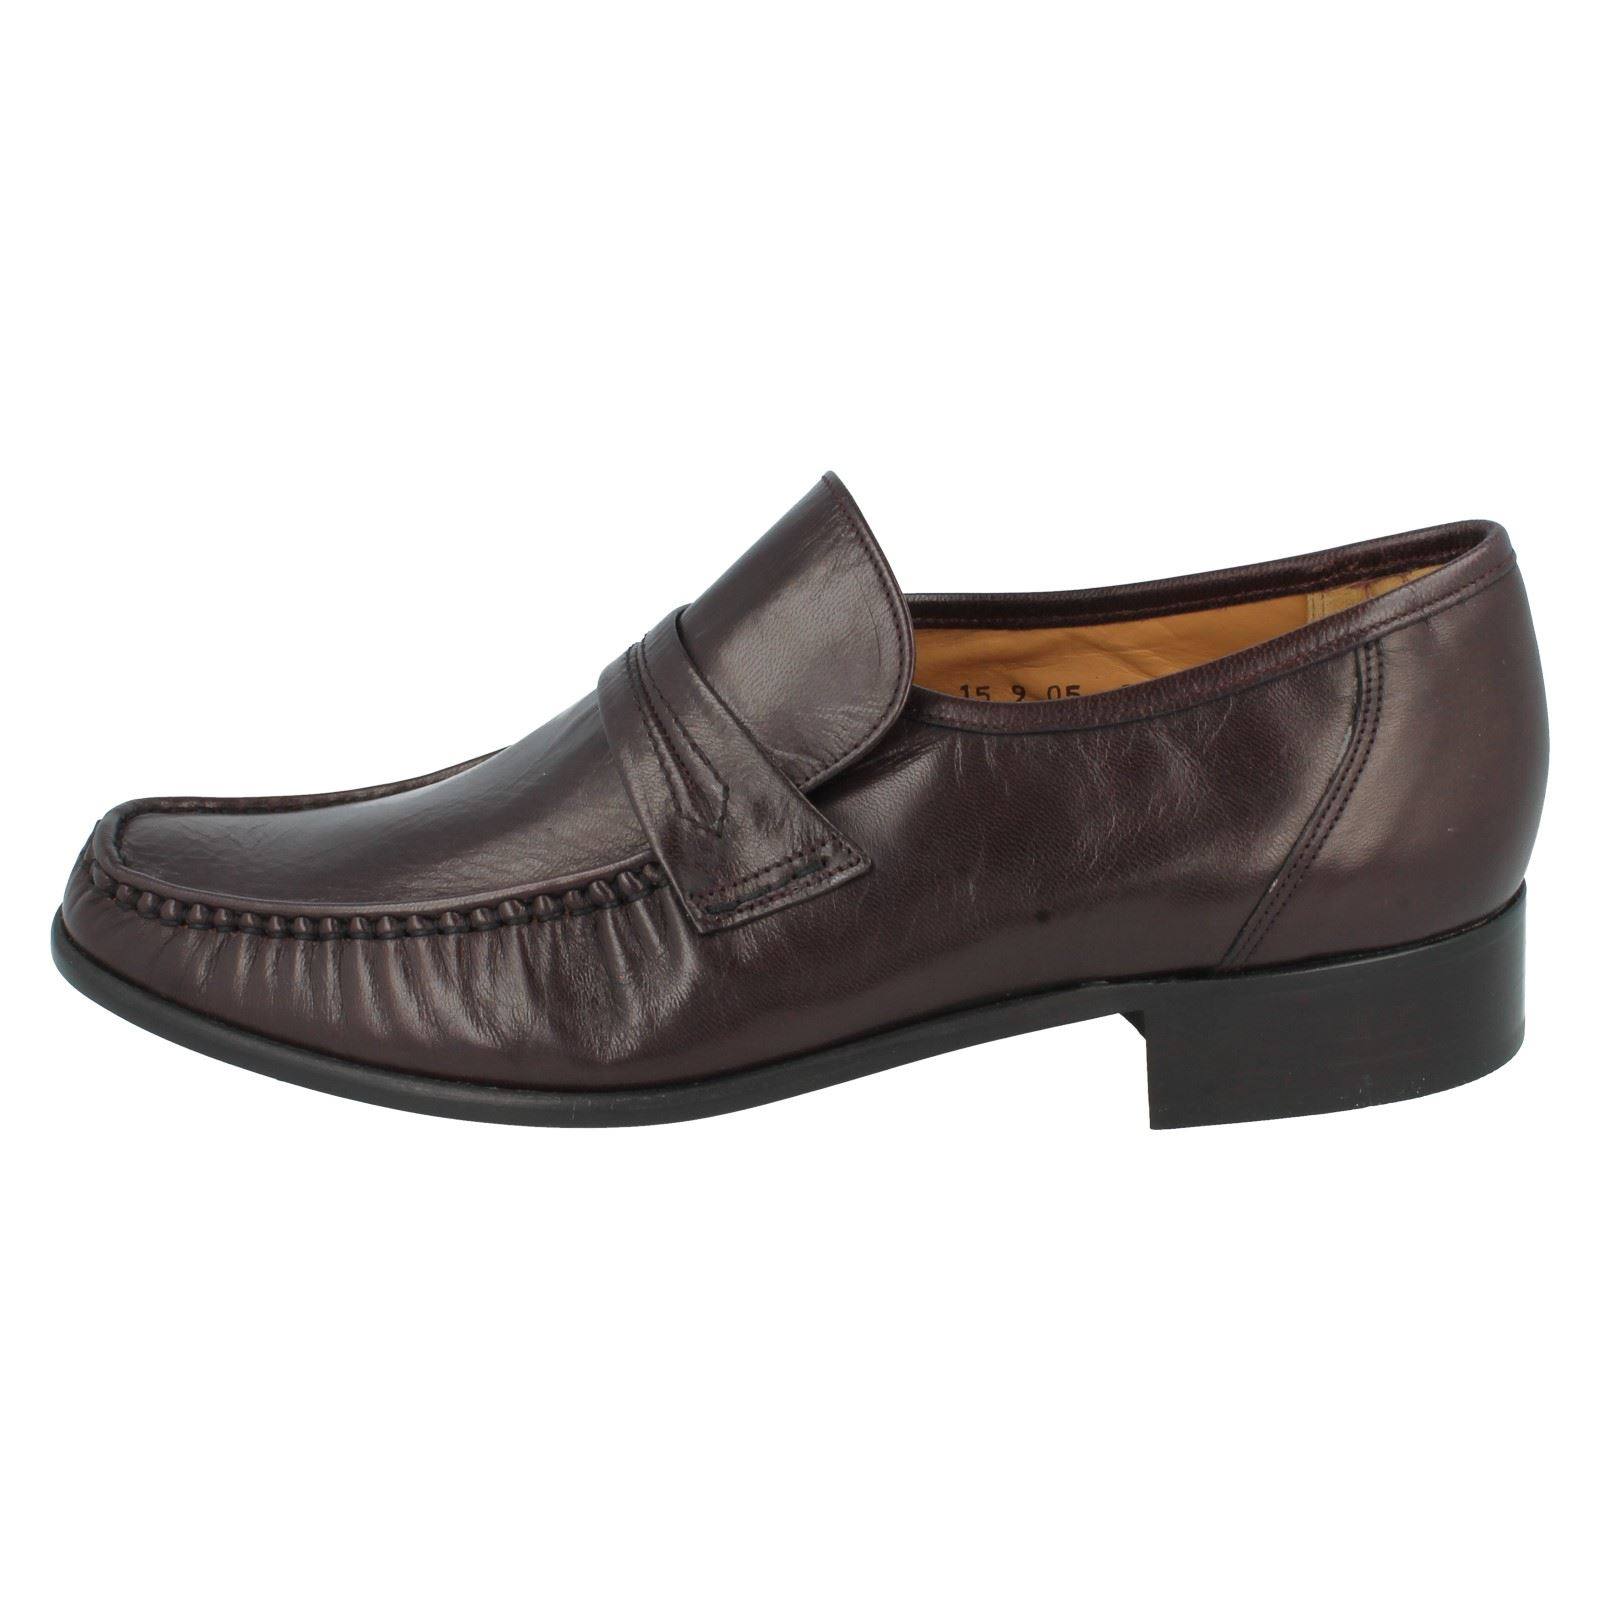 mens grenson slip on leather g fit moccasins formal shoes